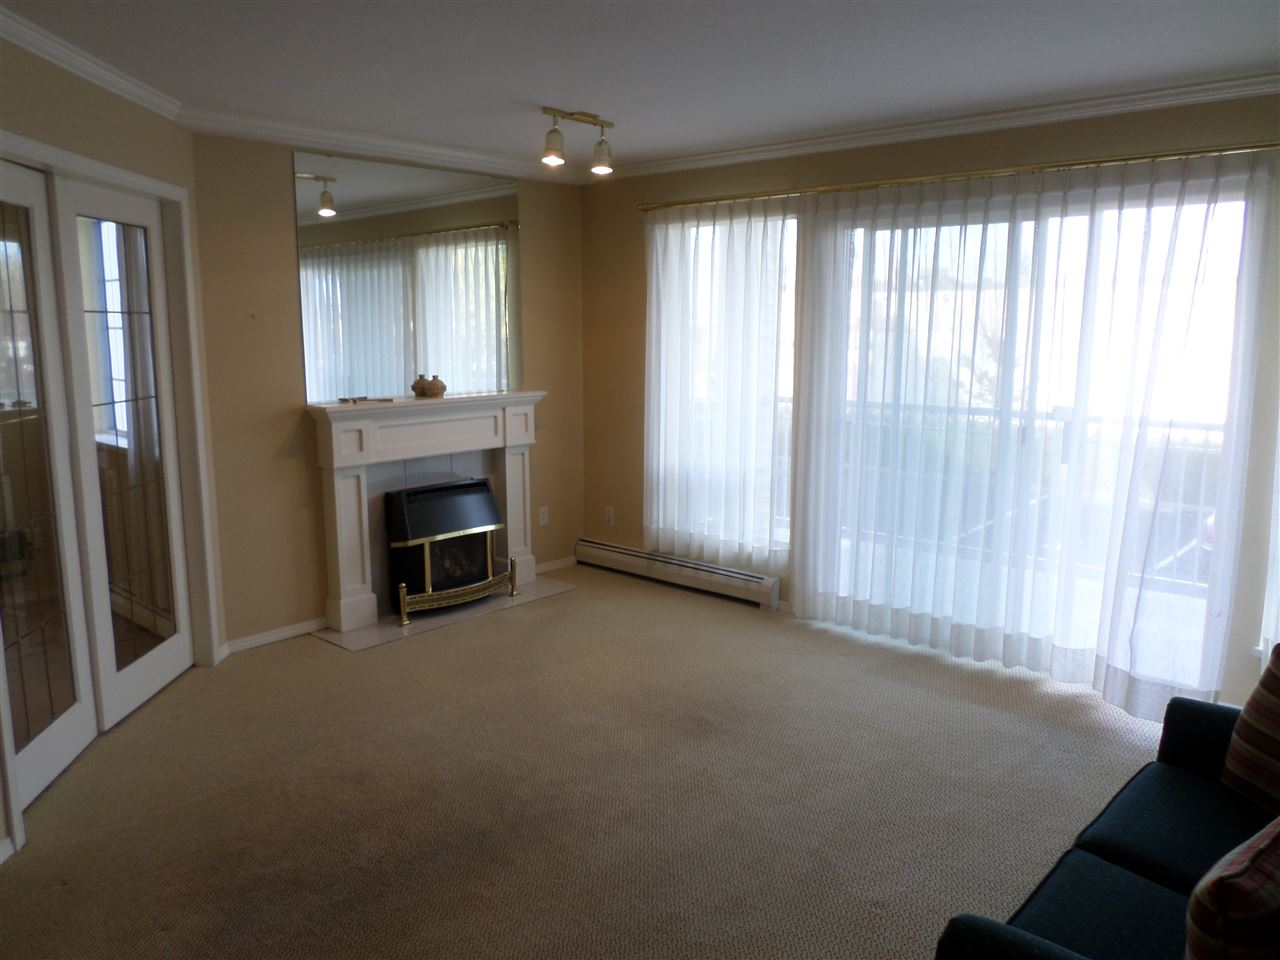 "Photo 9: 105 2491 GLADWIN Road in Abbotsford: Abbotsford West Condo for sale in ""LAKEWOOD GARDENS"" : MLS® # R2122538"